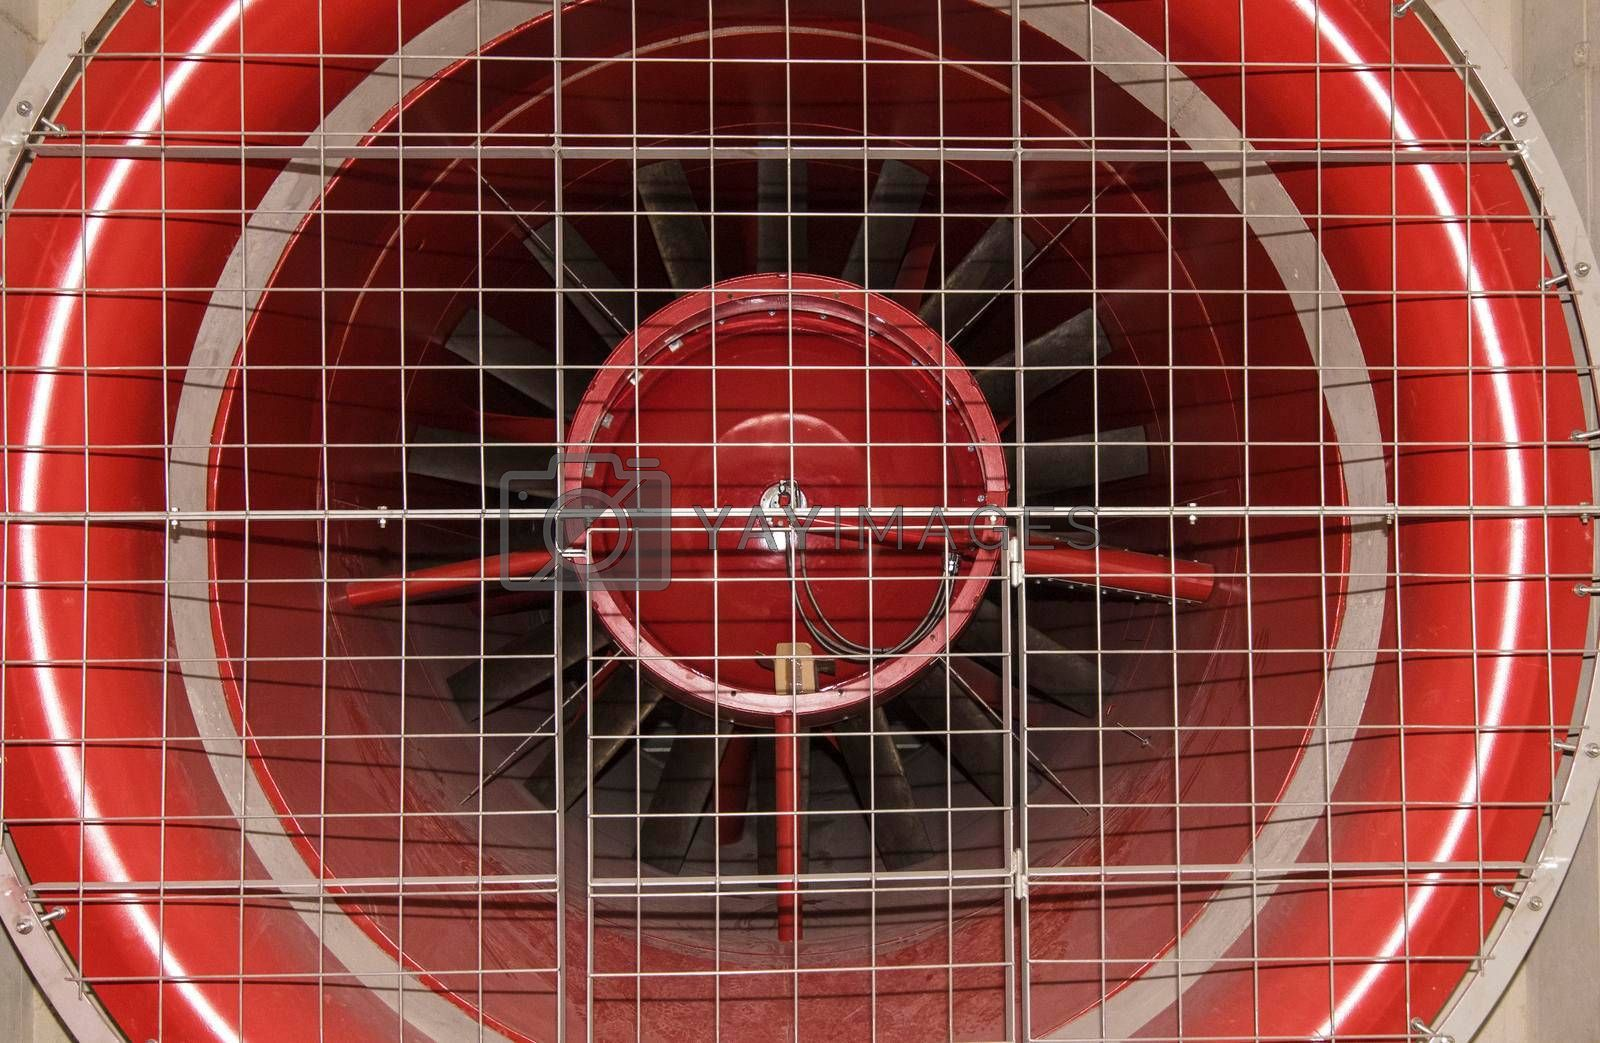 turbine a rotary mechanical device used for generating electrical power